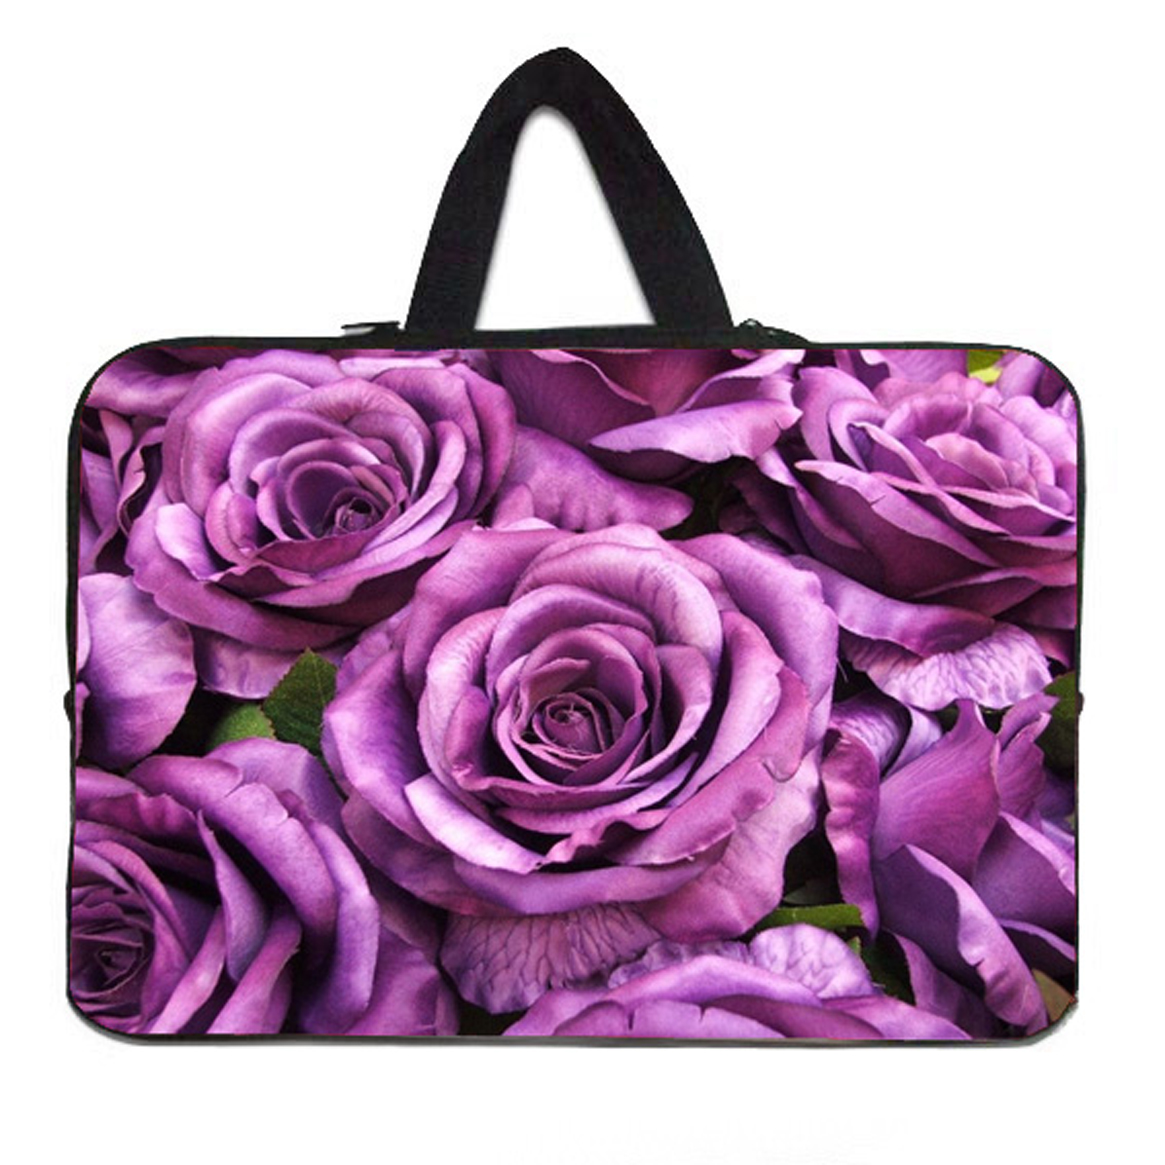 "Flower bags on the ocean Flower neoprenp 14 inch 14.1"" 14.2"" 14.4"" Laptop soft Sleeve Bags 14""Computer Accessories + Hide Handle(China (Mainland))"